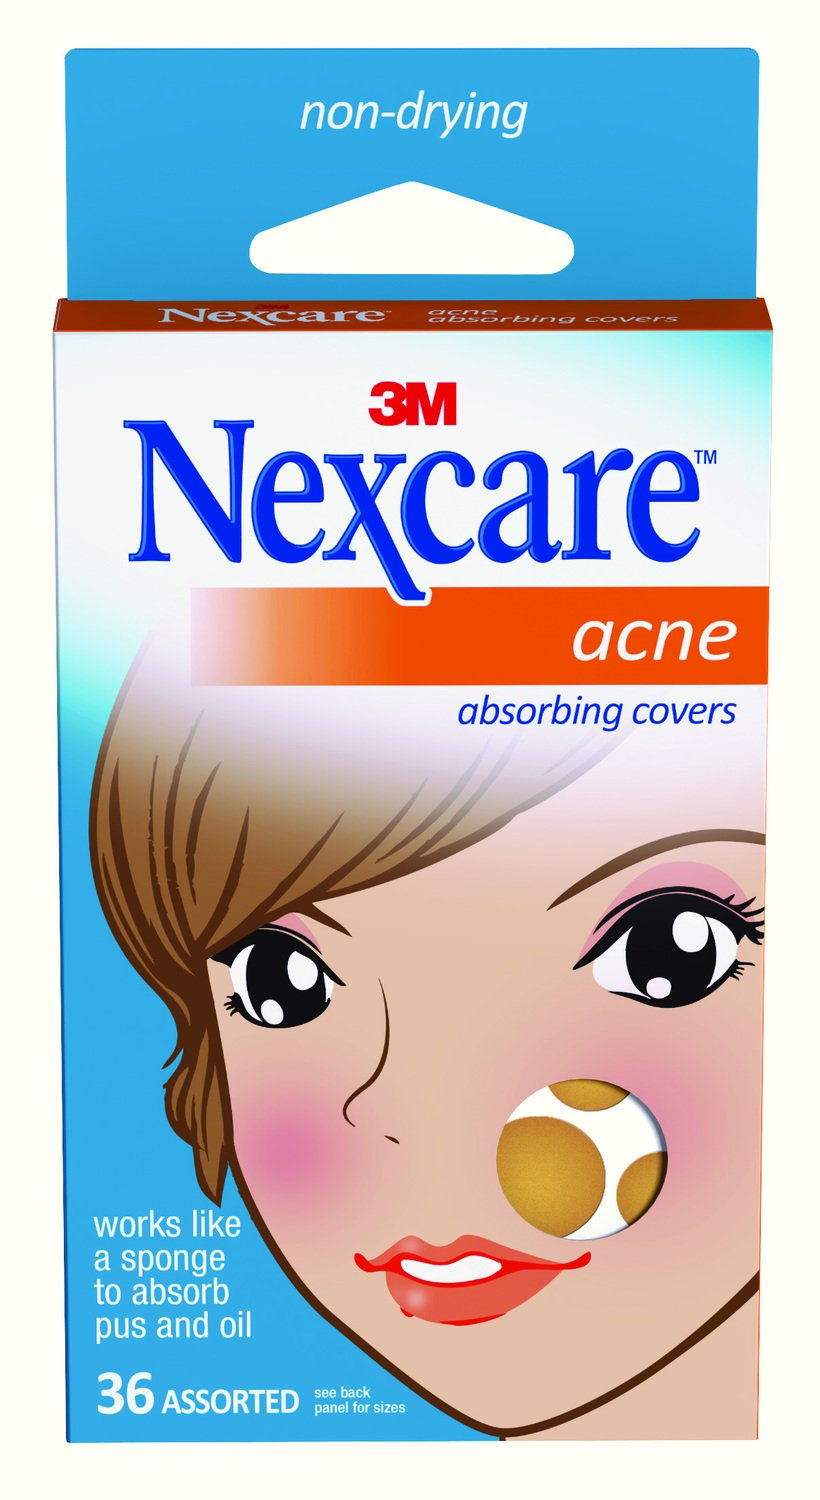 Buy Nexcare Acne Absorbing Cover Now!